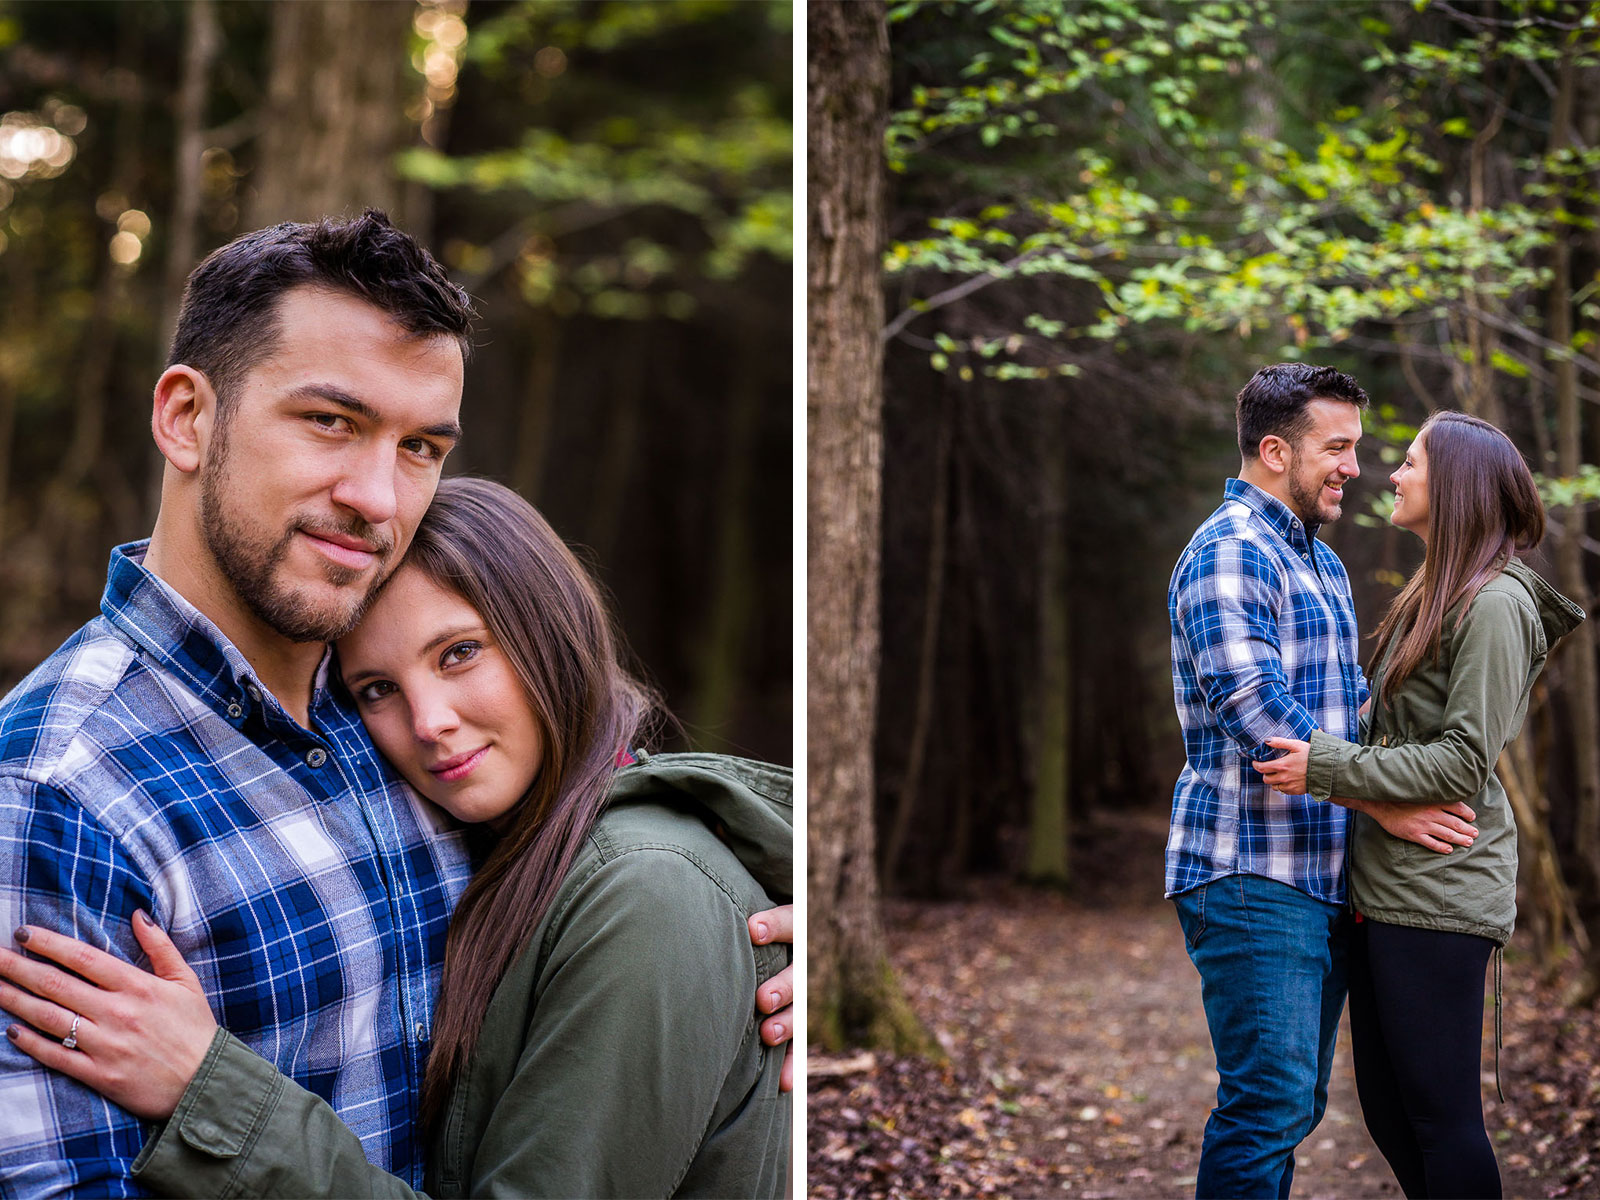 Eric_and_Christy_Photography_Blog_Stephanie_Nick_Engagement-22-23